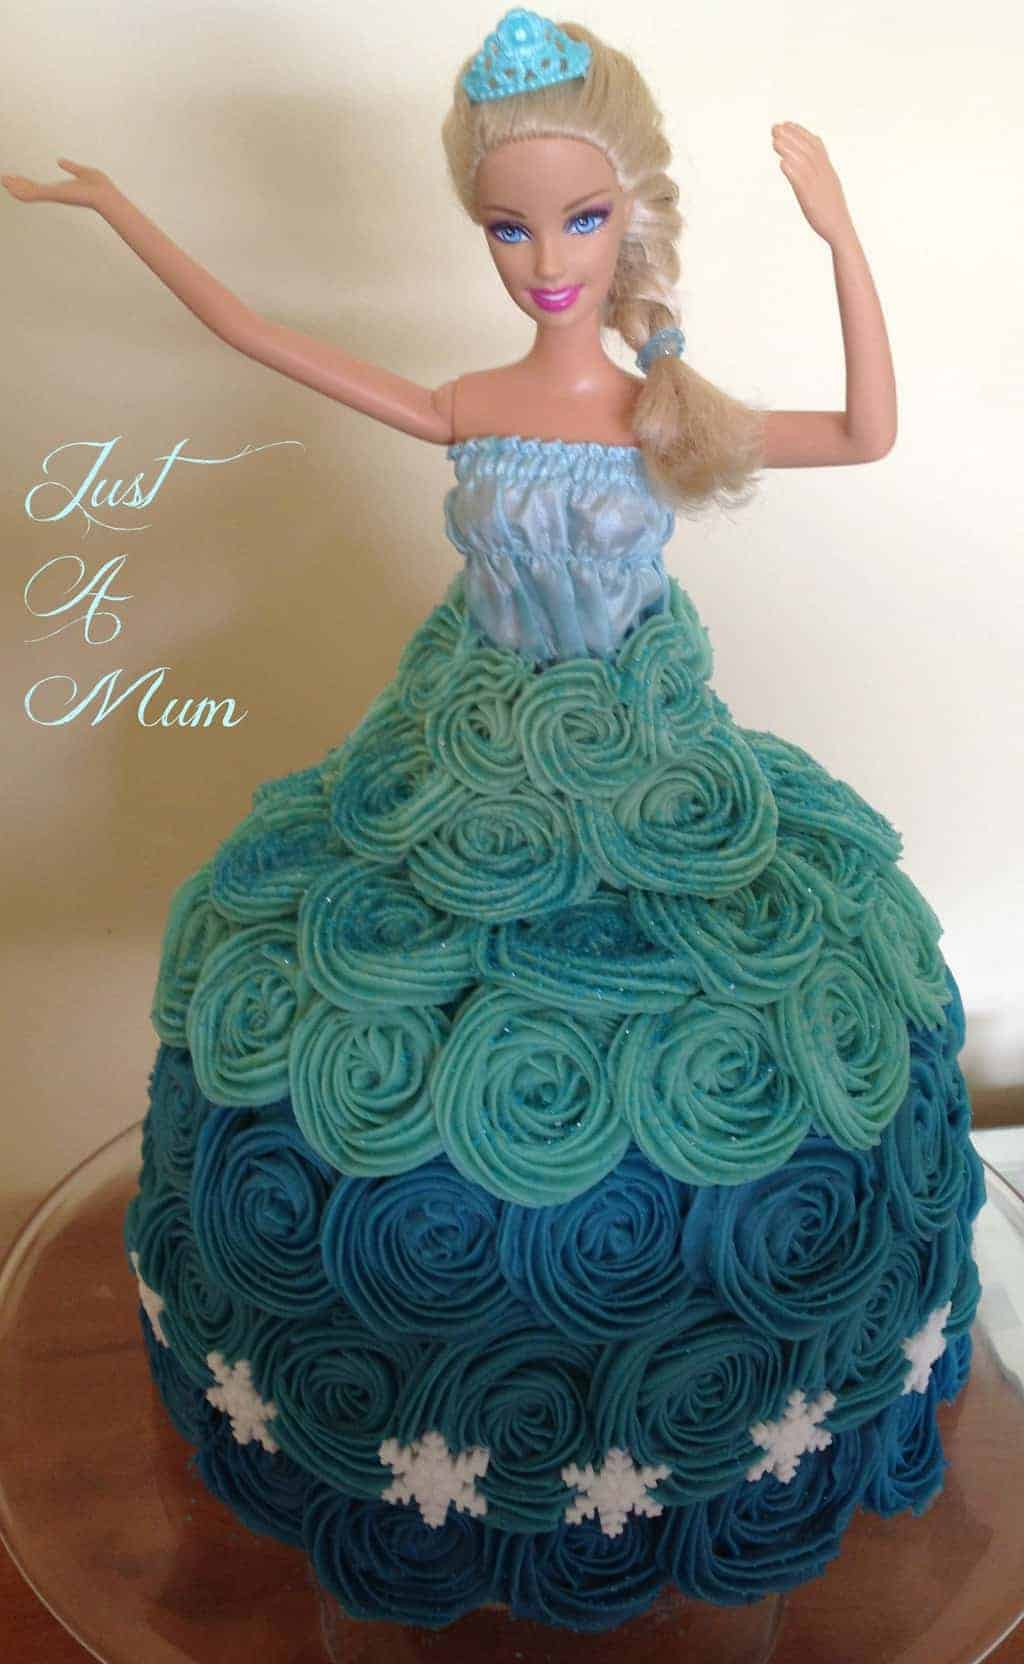 Frozen Princess Elsa Cake Just a Mum